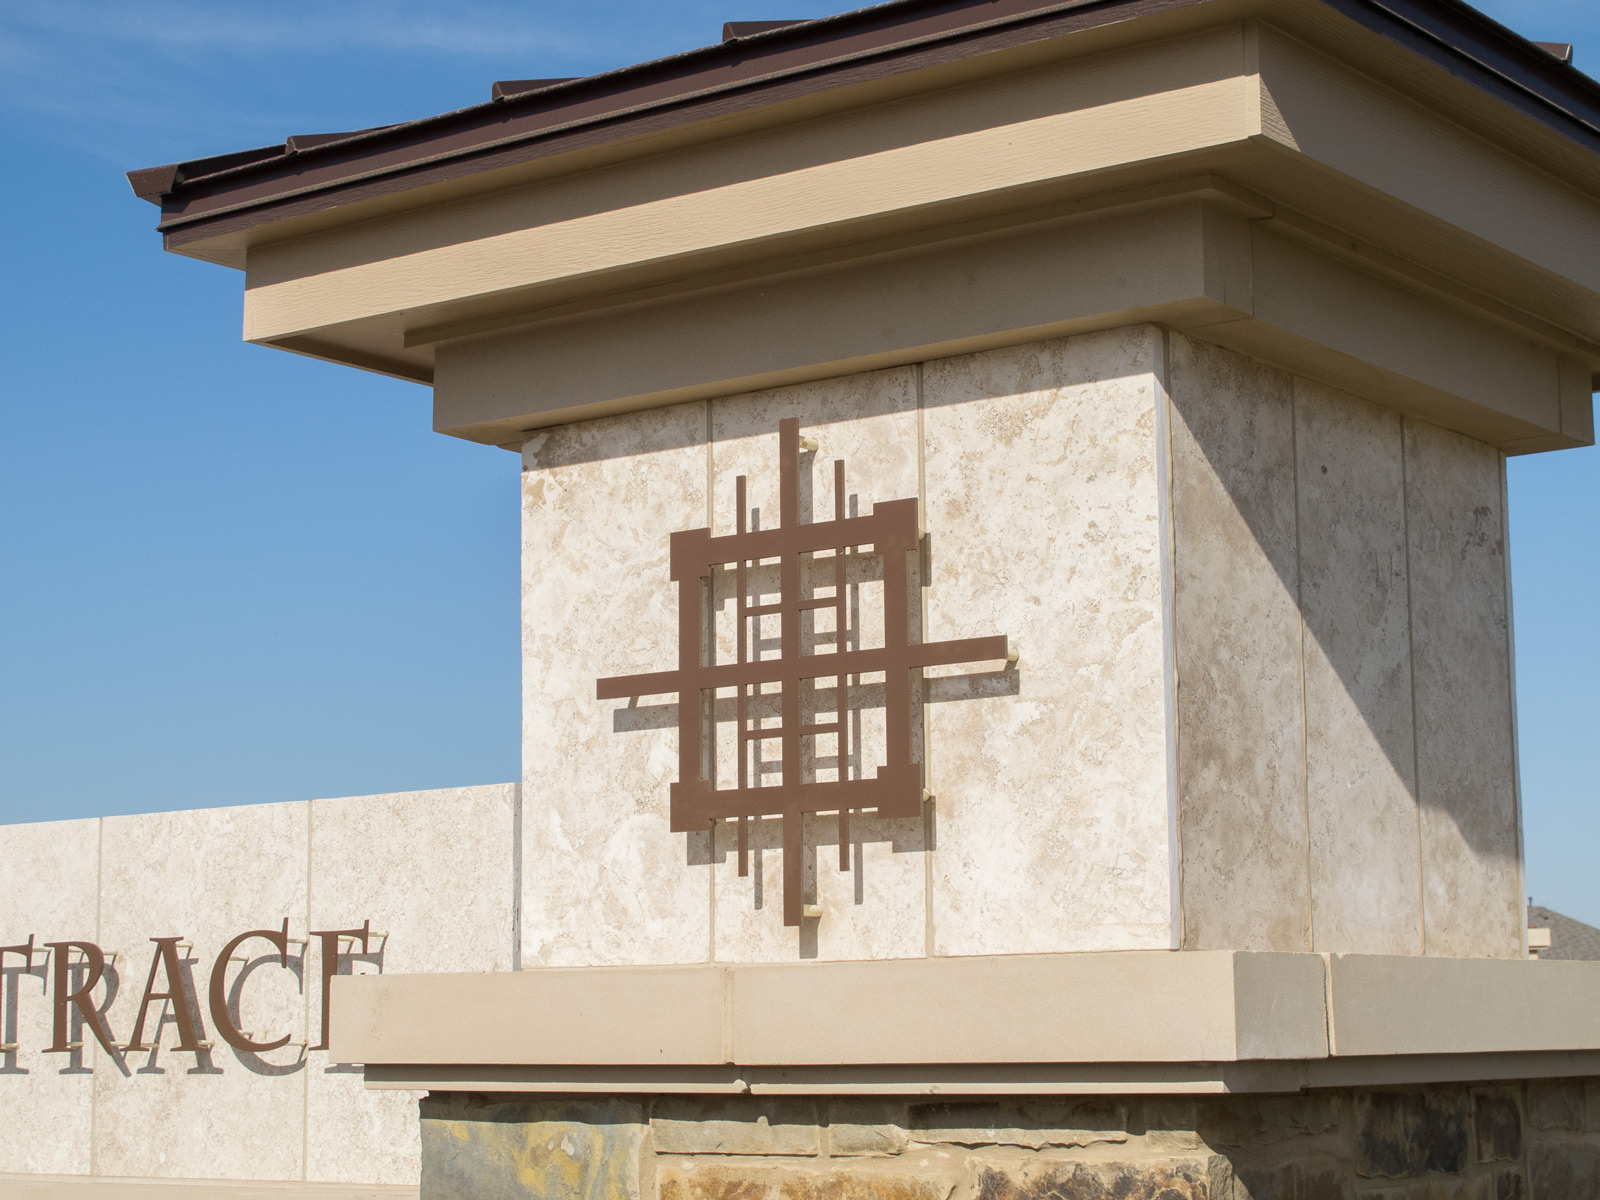 Close up view of dimensional aluminum logo graphics on neighborhood entry monument.